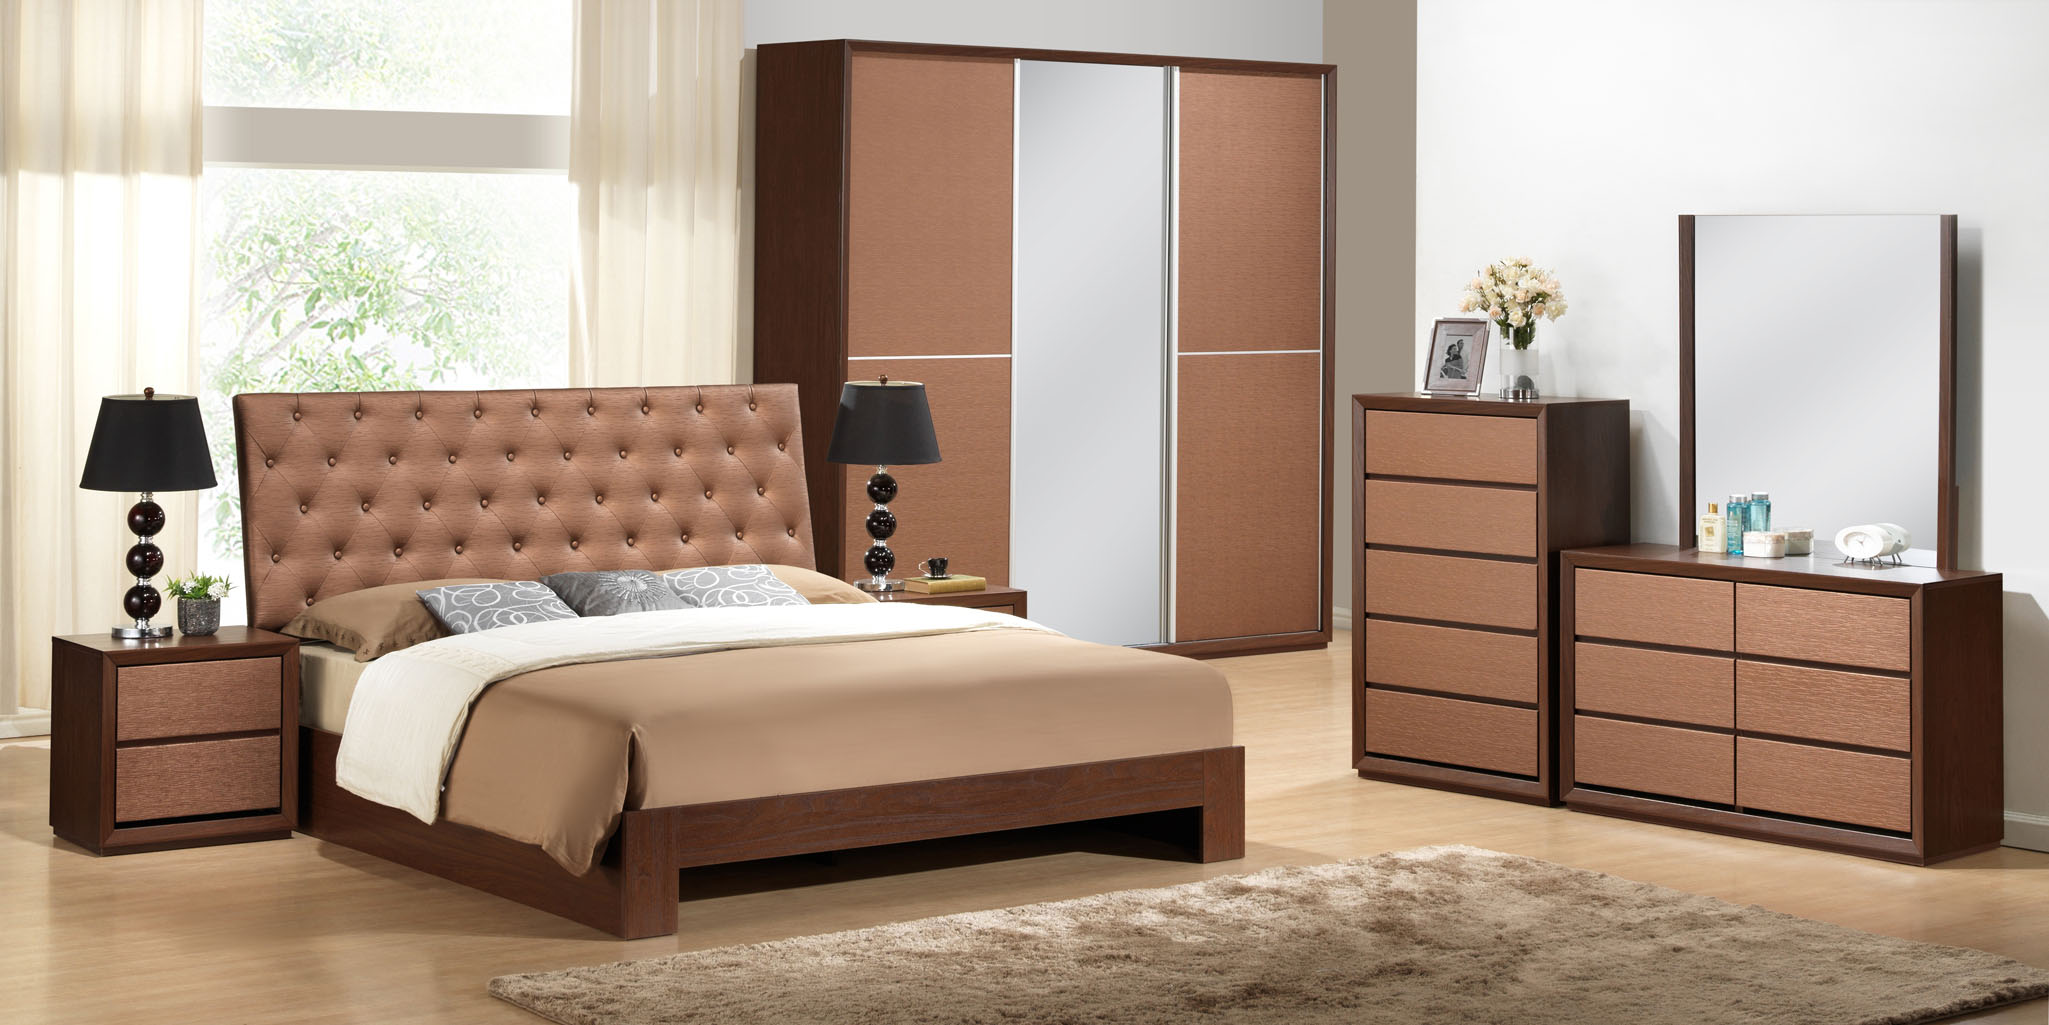 Quincy bedroom set fair production sdn bhd Home furniture online coimbatore